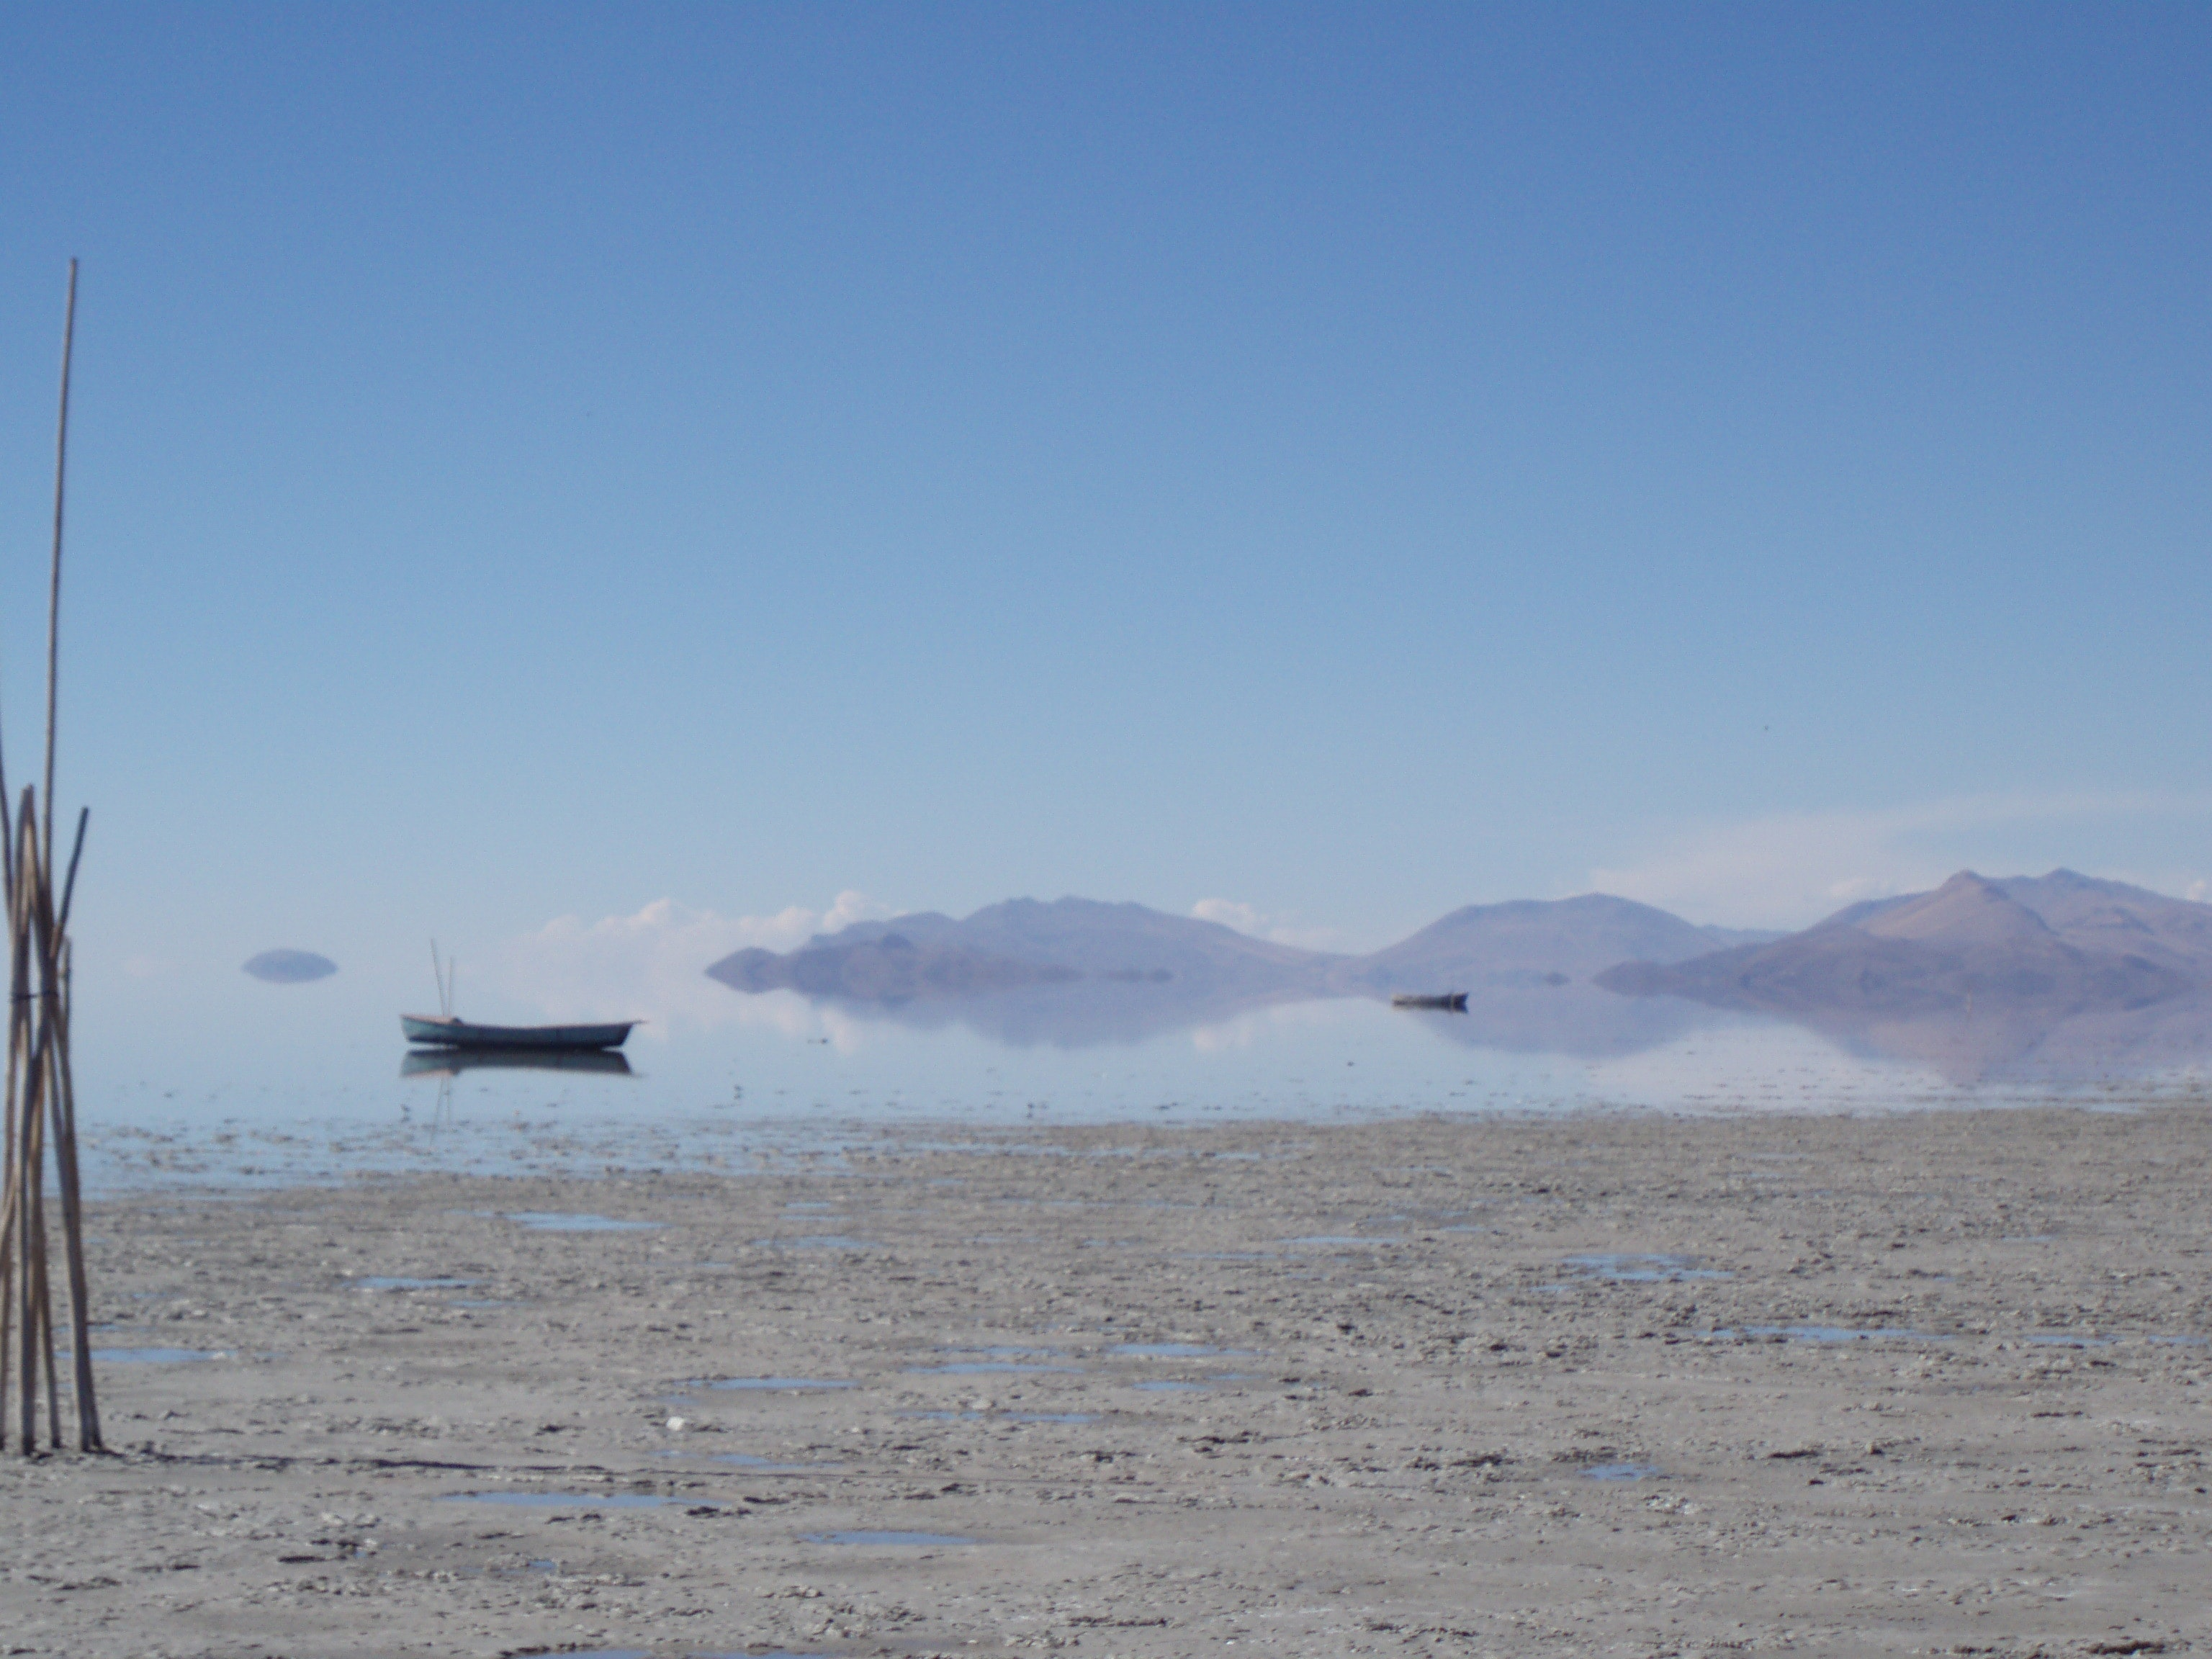 Dried shore, boats on lake, hills in distance.